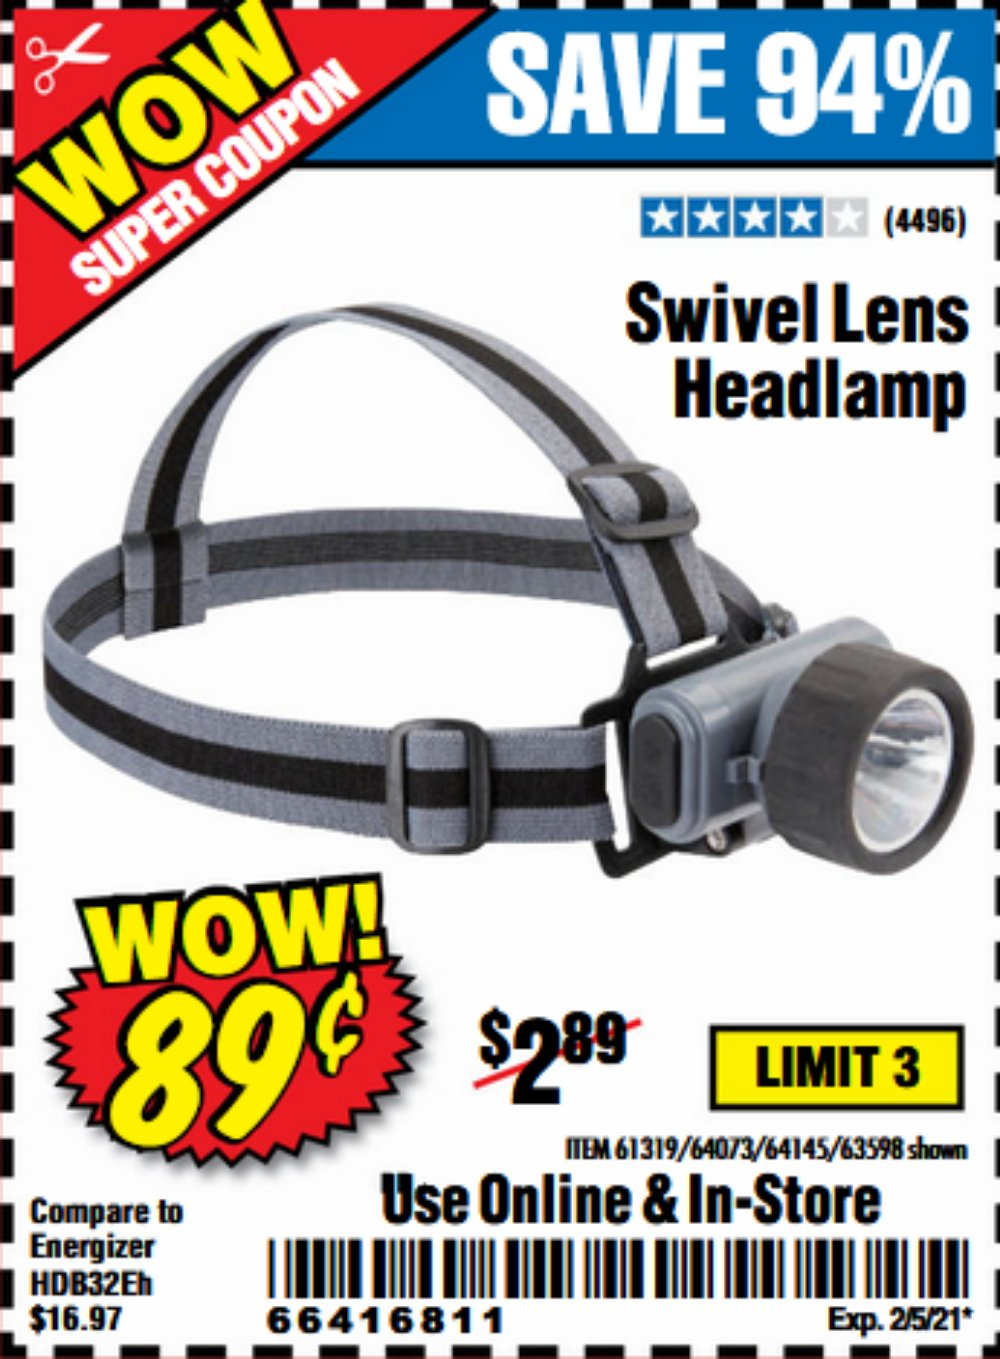 Harbor Freight Tools Coupons, Harbor Freight Coupon, HF Coupons-Headlamp With Swivel Lens